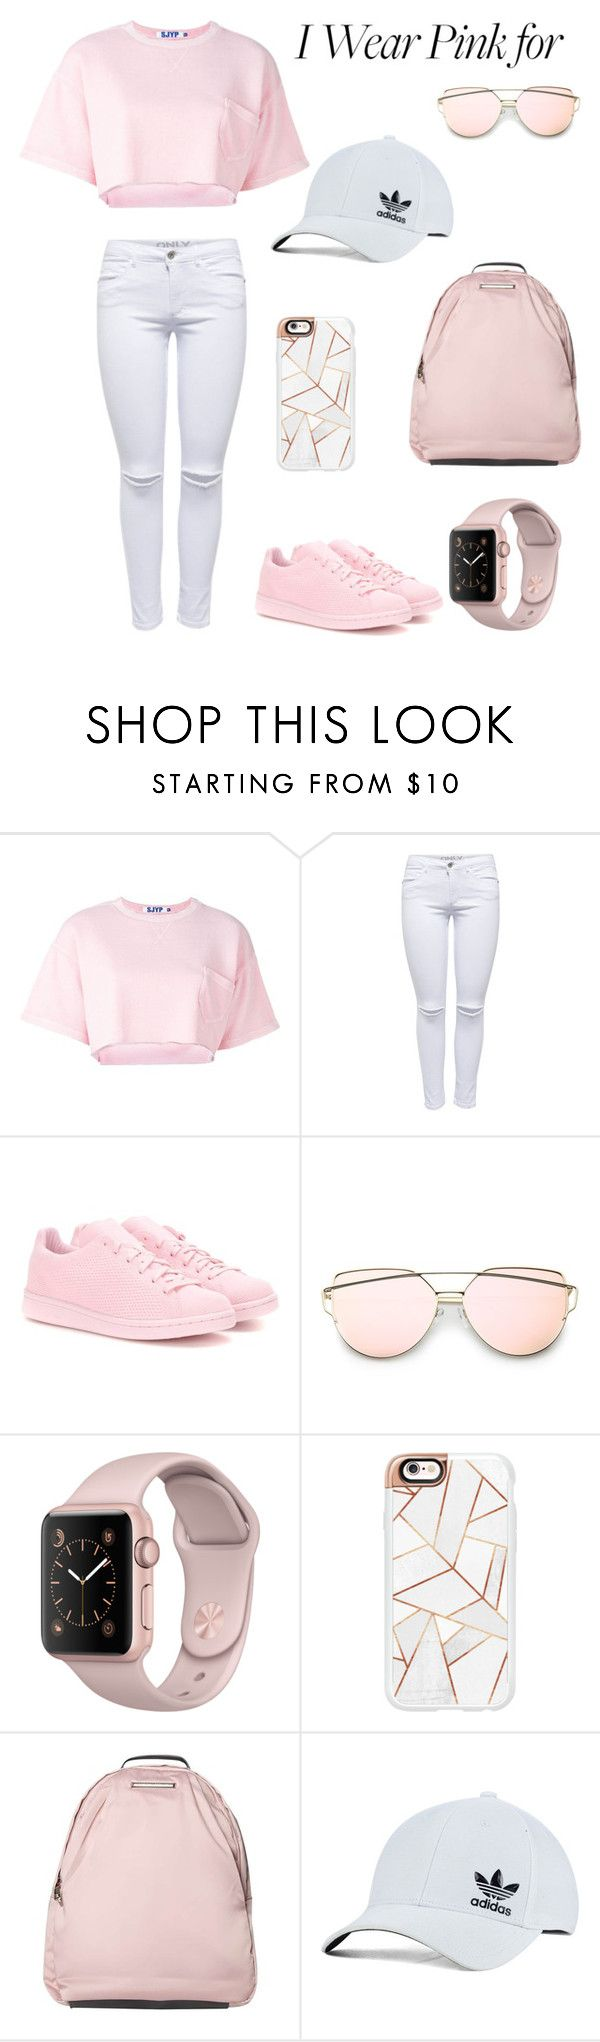 """""""PINK"""" by agne-zukaite ❤ liked on Polyvore featuring Steve J & Yoni P, adidas Originals, Casetify, Dorothy Perkins and IWearPinkFor"""